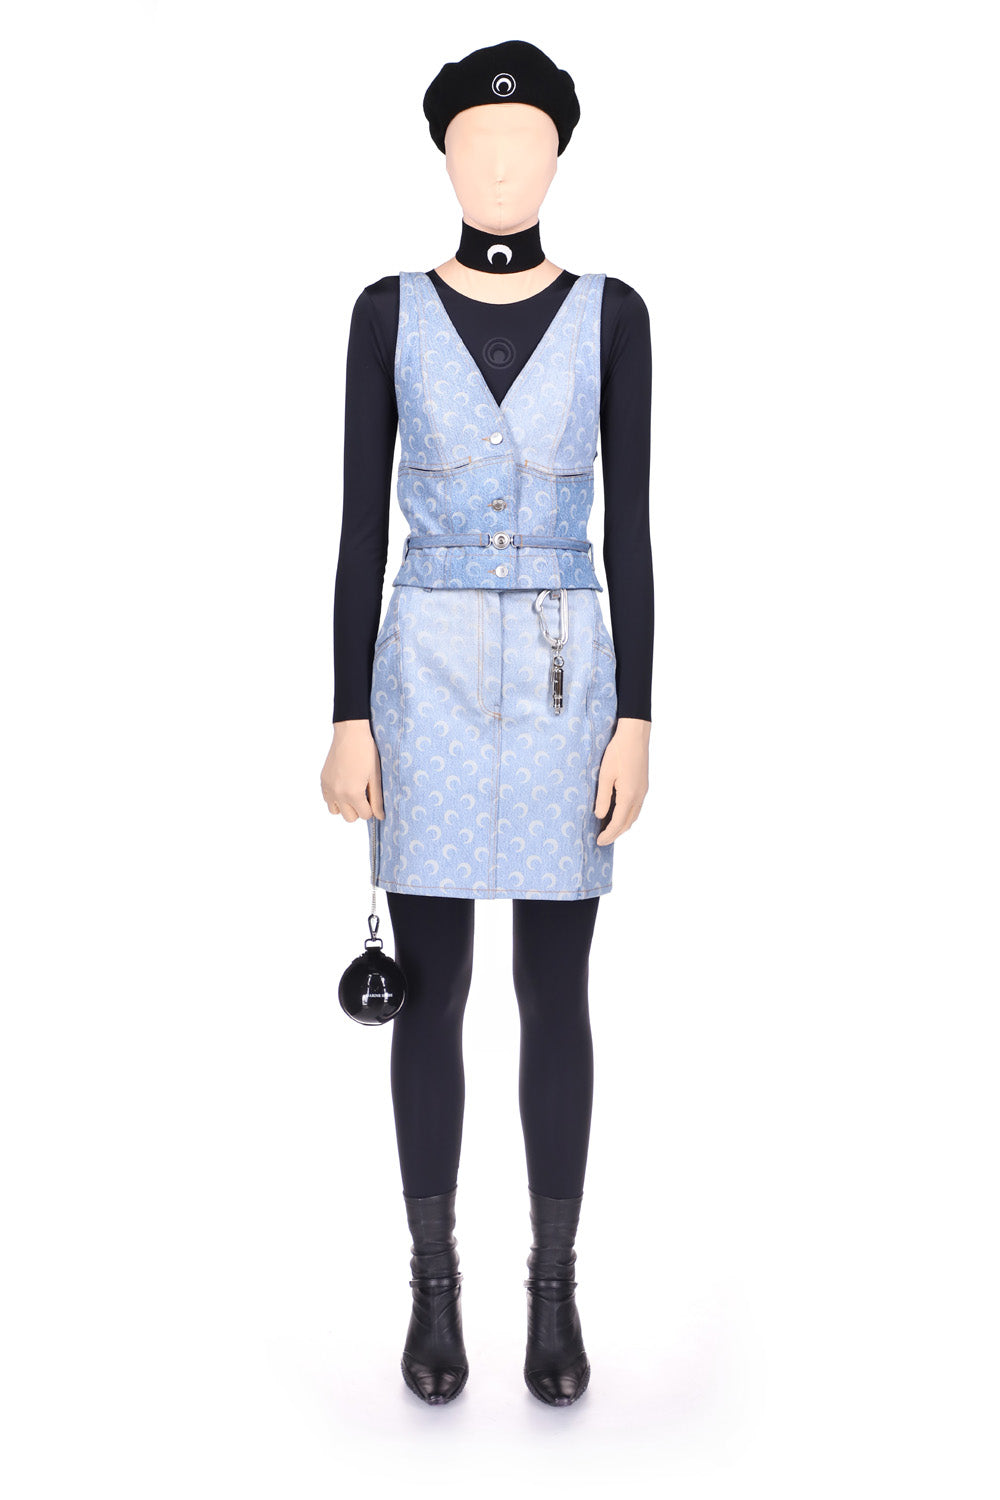 Moon Denim Strapped Apron Top